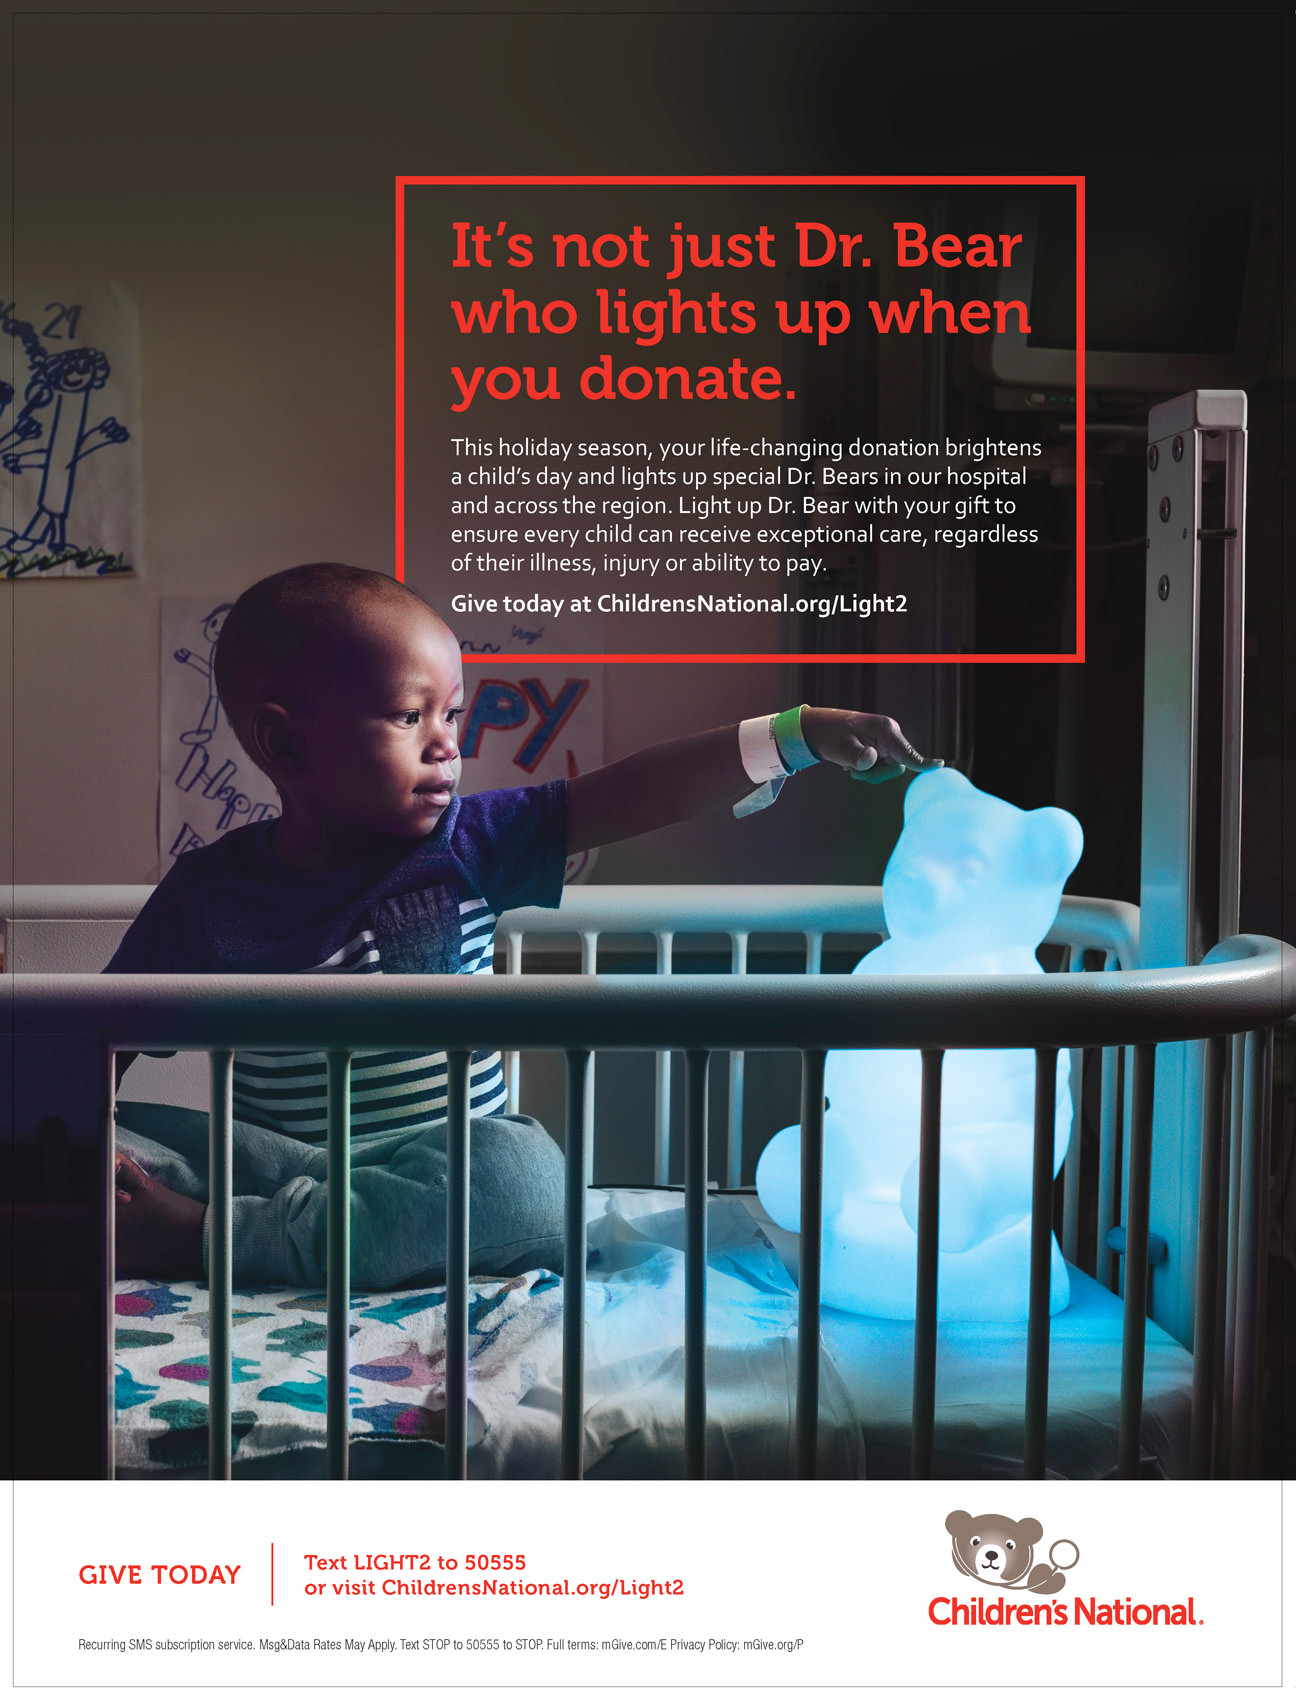 boy touching glowing bear in hospital bed for children